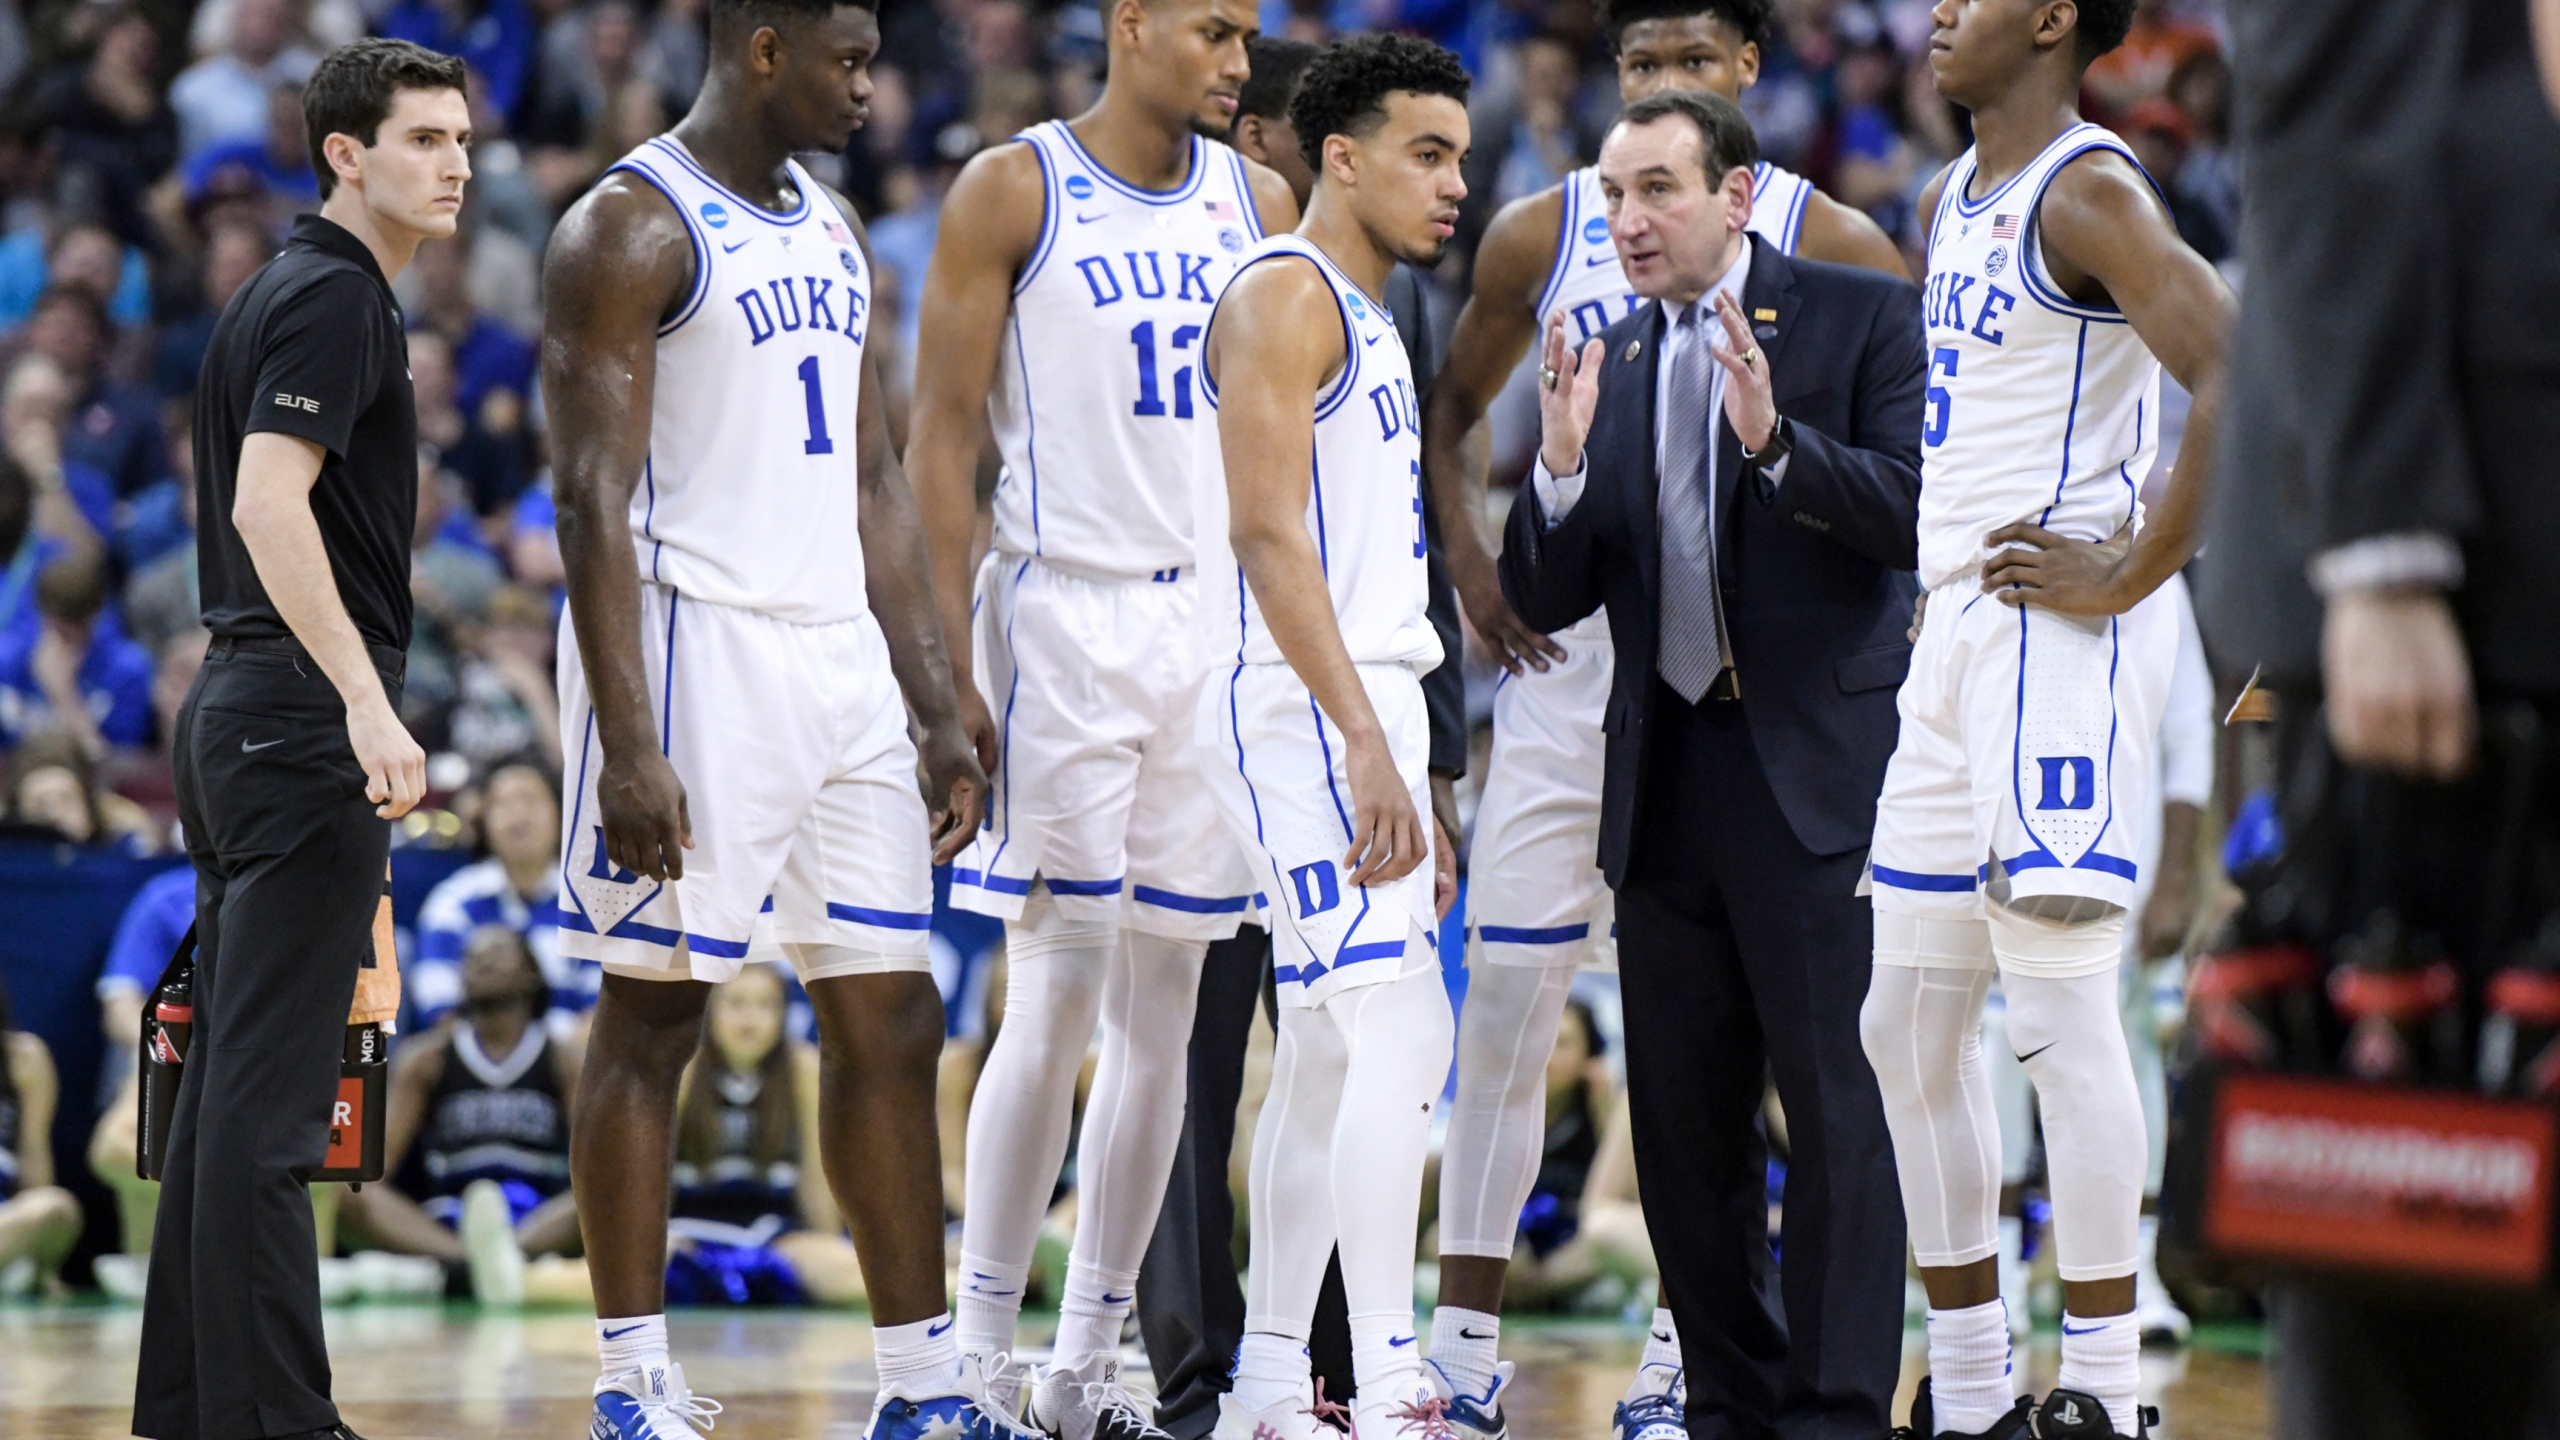 NCAA_UCF_Duke_Basketball_19048-159532.jpg71288940